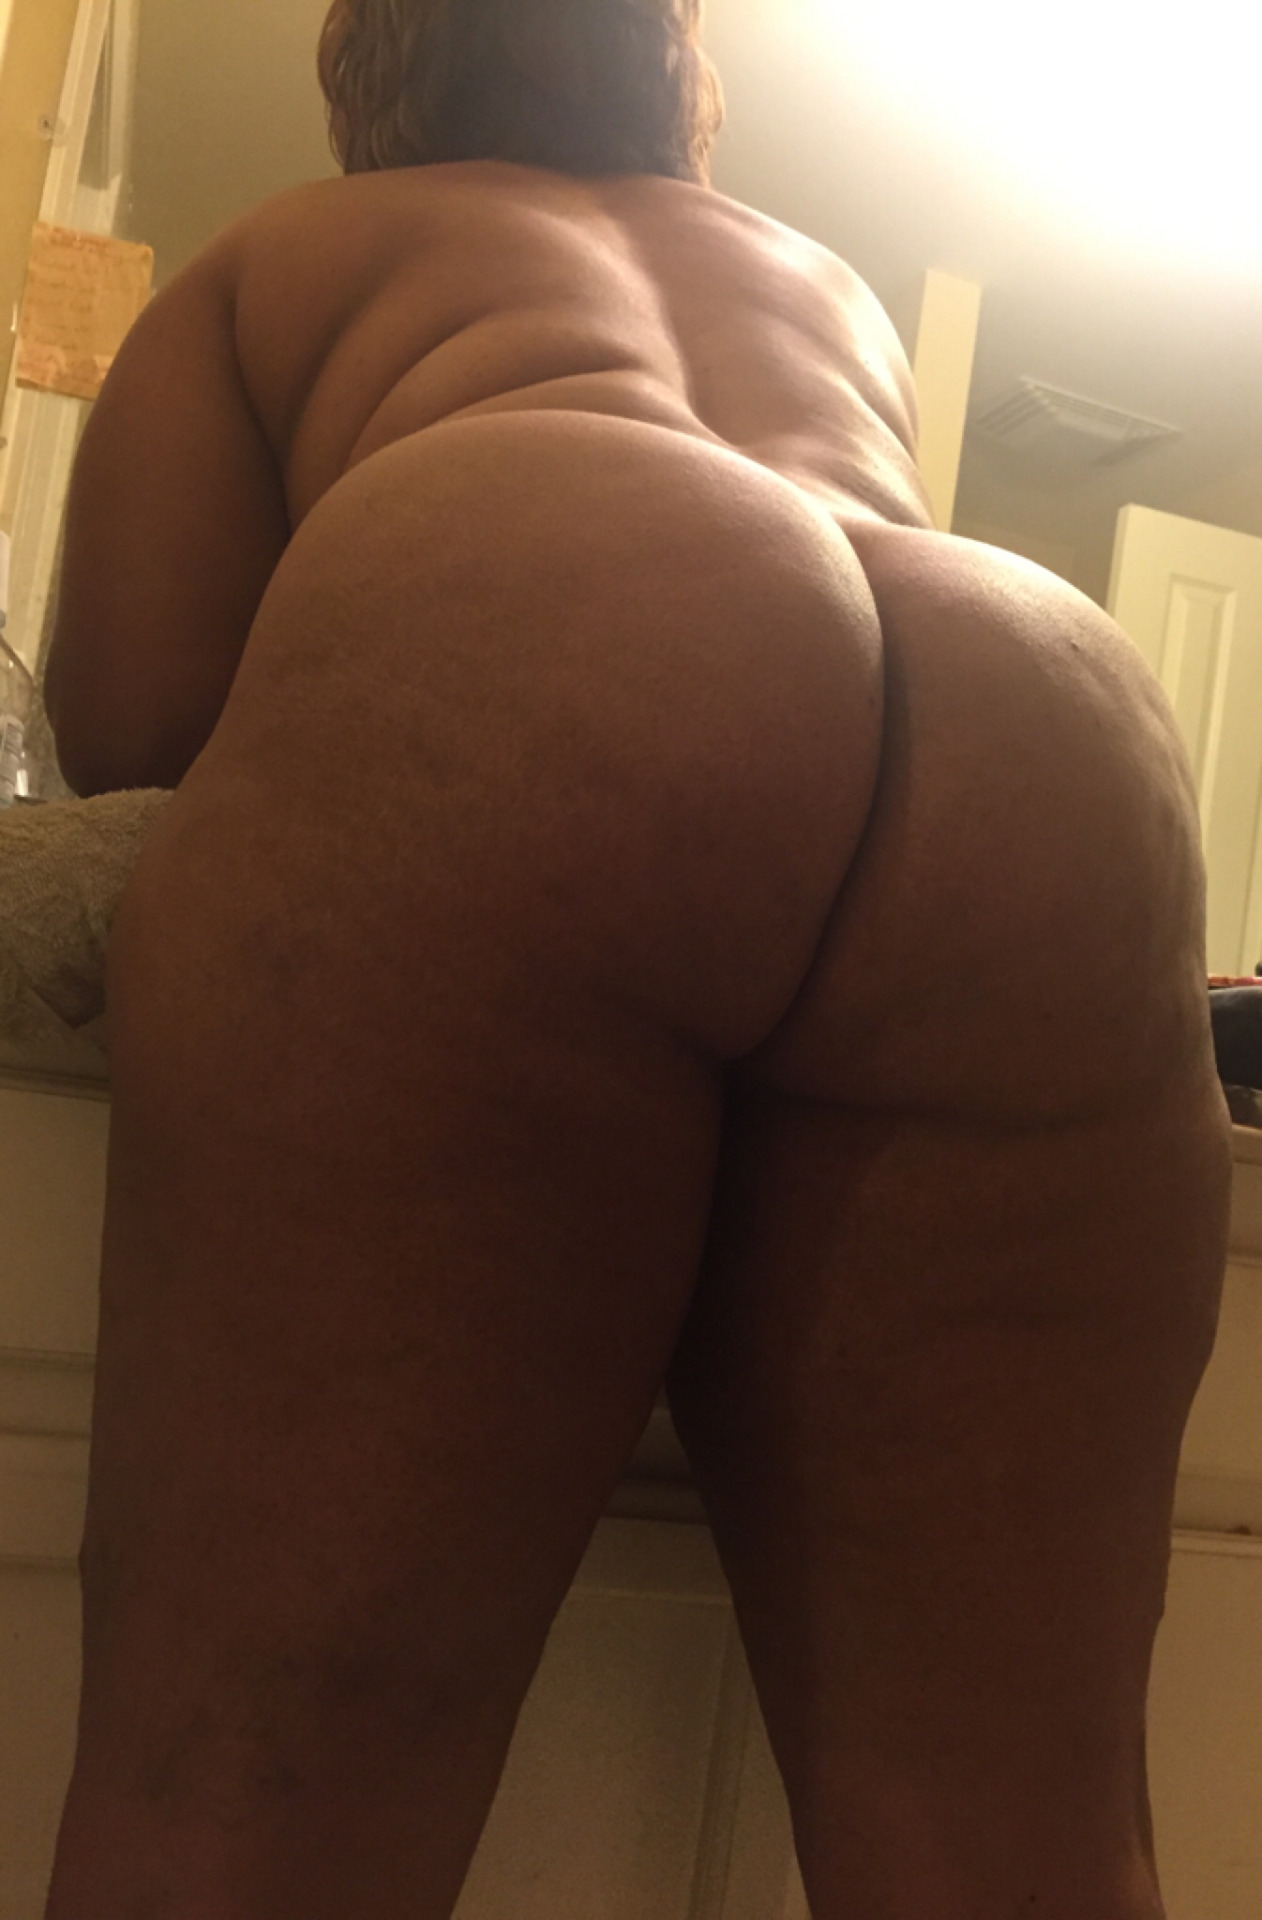 Big wide thick ass wobbling in tight pants 2